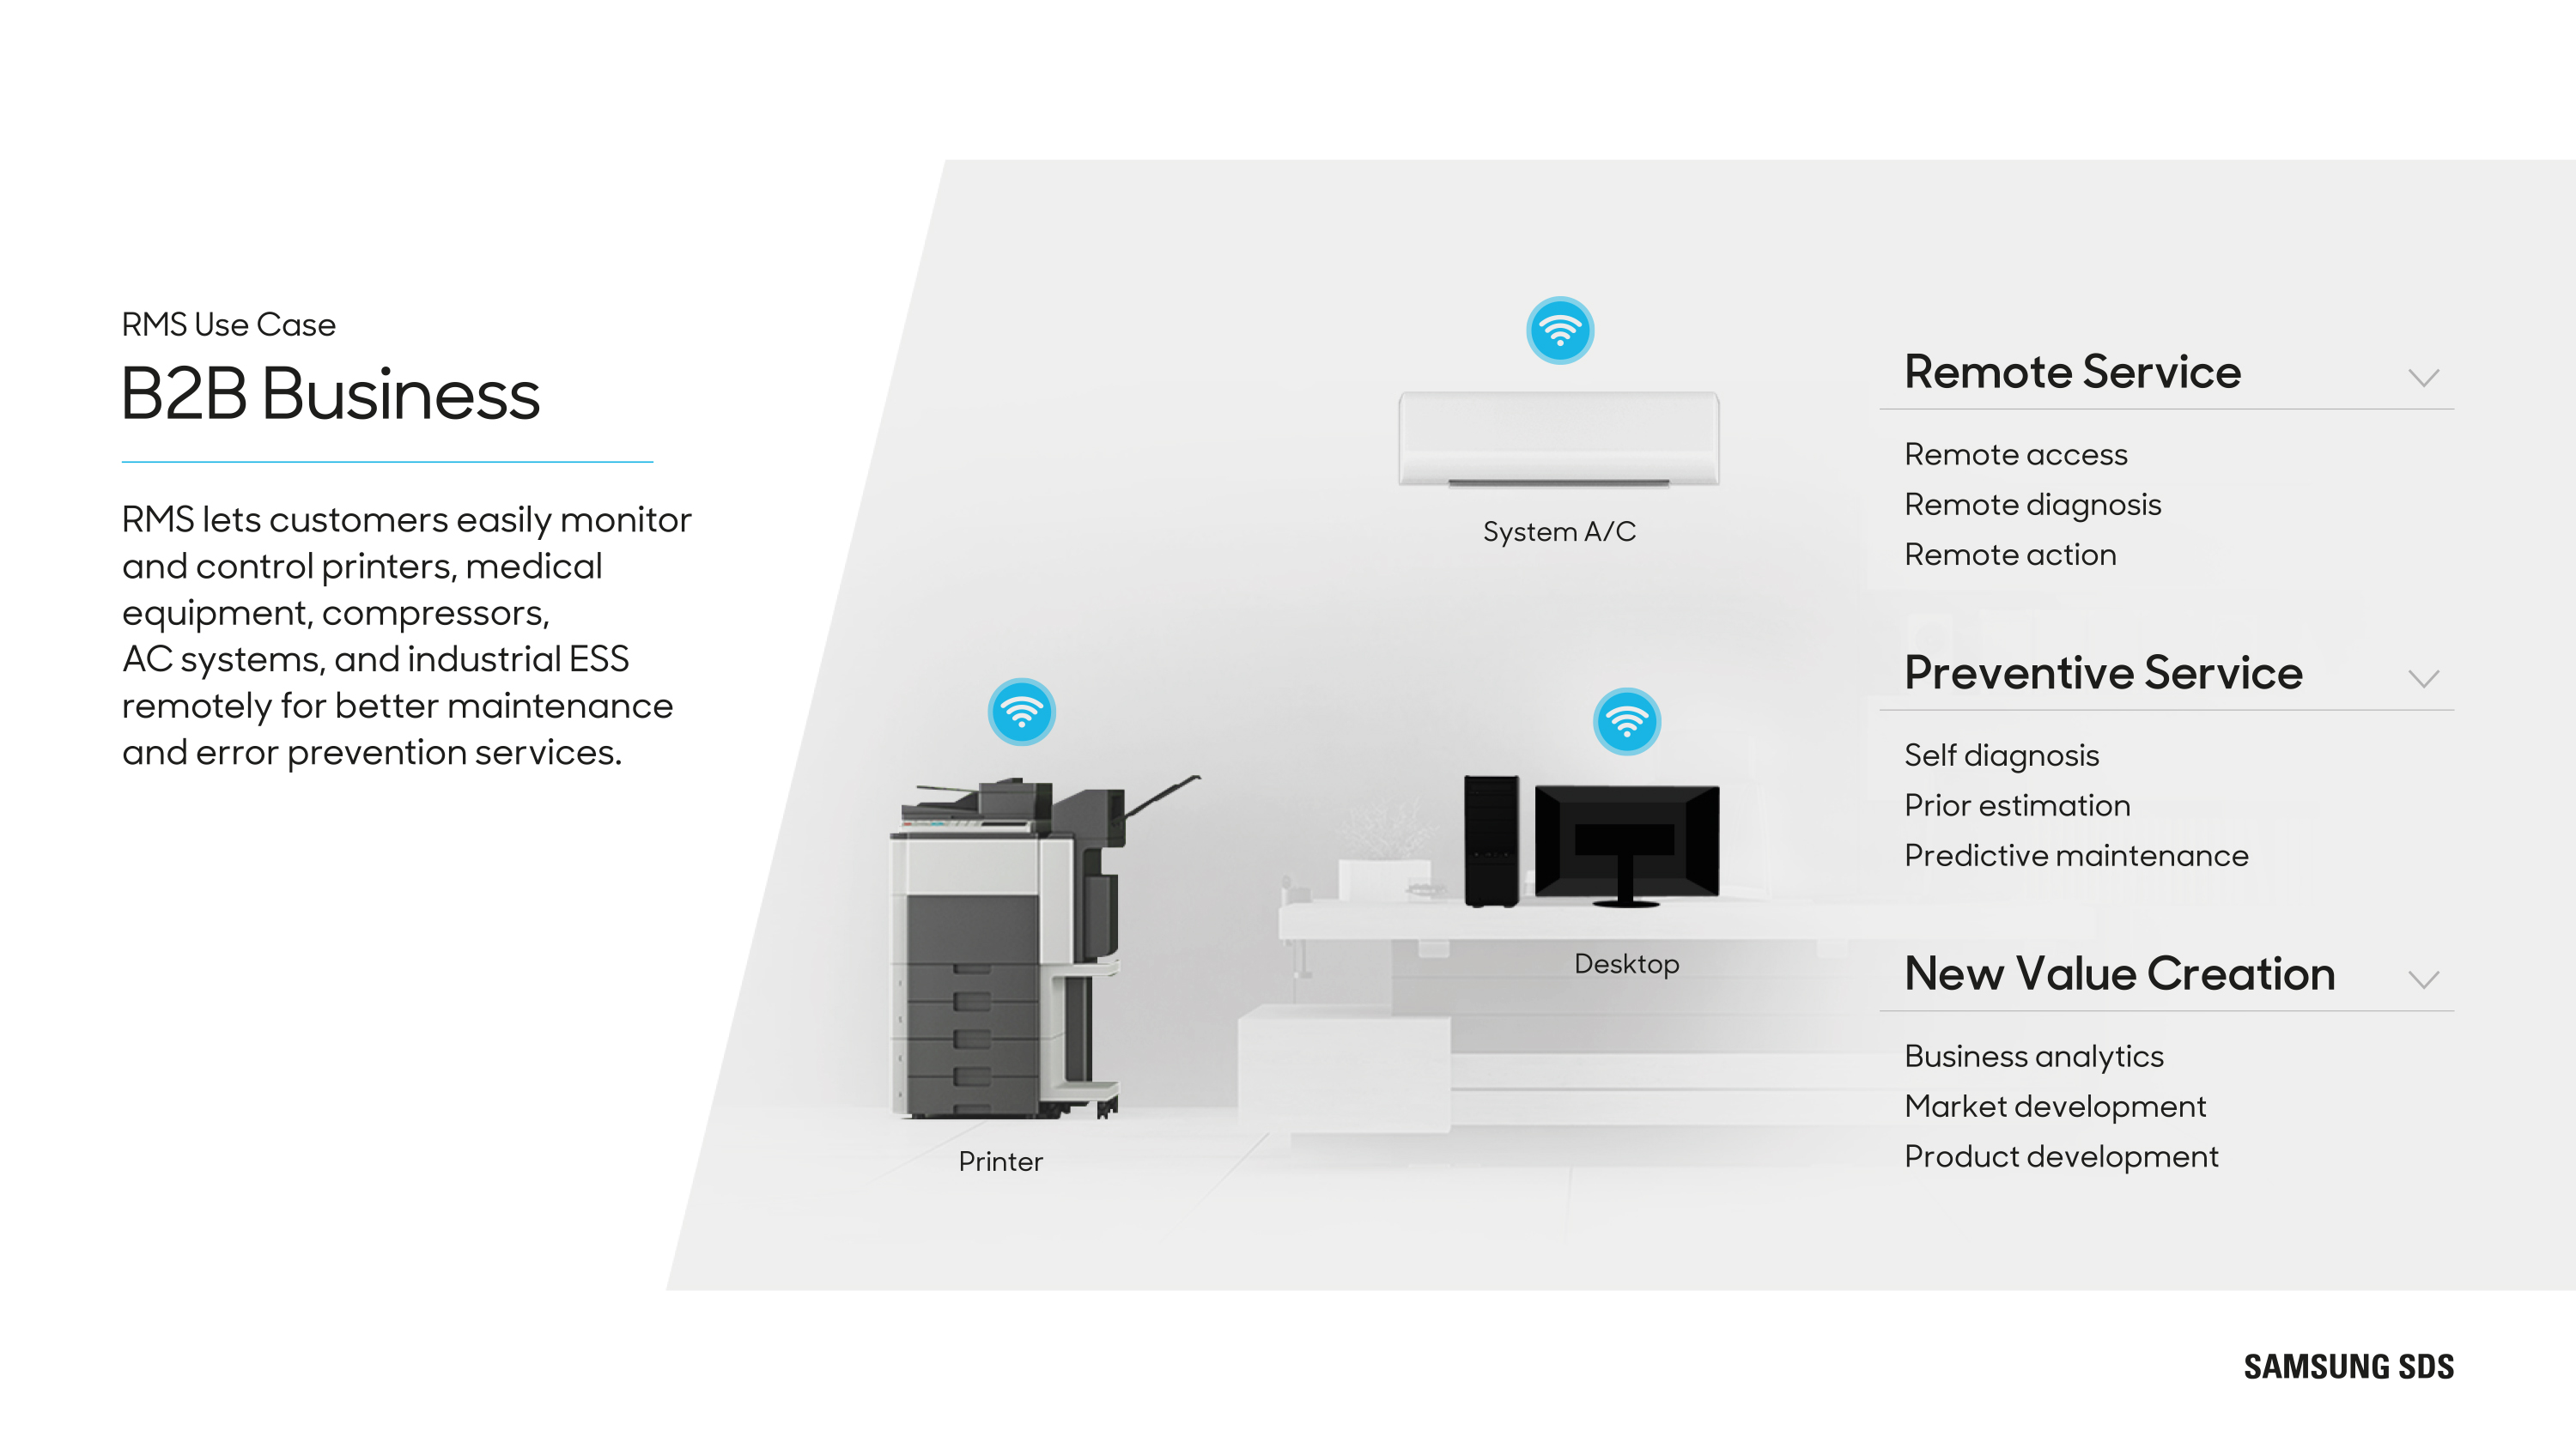 B2B Business RMS lets customers easily monitor and control printers, medical equipment, compressors, AC systems, and industrial ESS remotely for better maintenance and error prevention services.